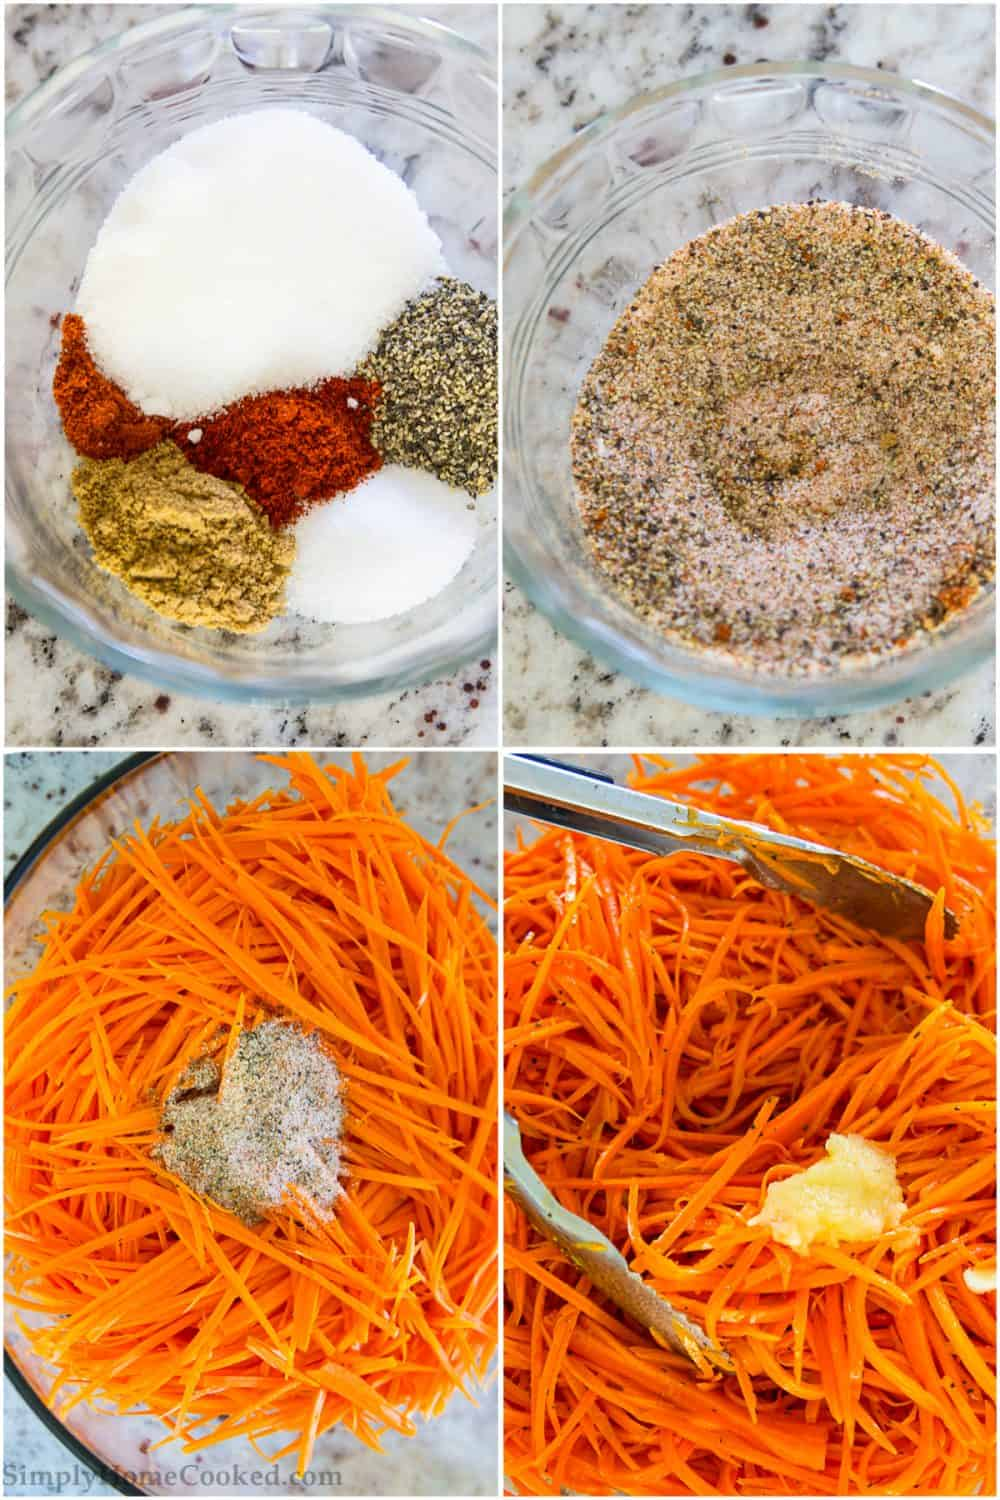 steps to make shredded carrot salad. paprika, cayenne, salt, black pepper, coriander in a glass bowl. shredded carrot and pressed garlic in a glass bowl